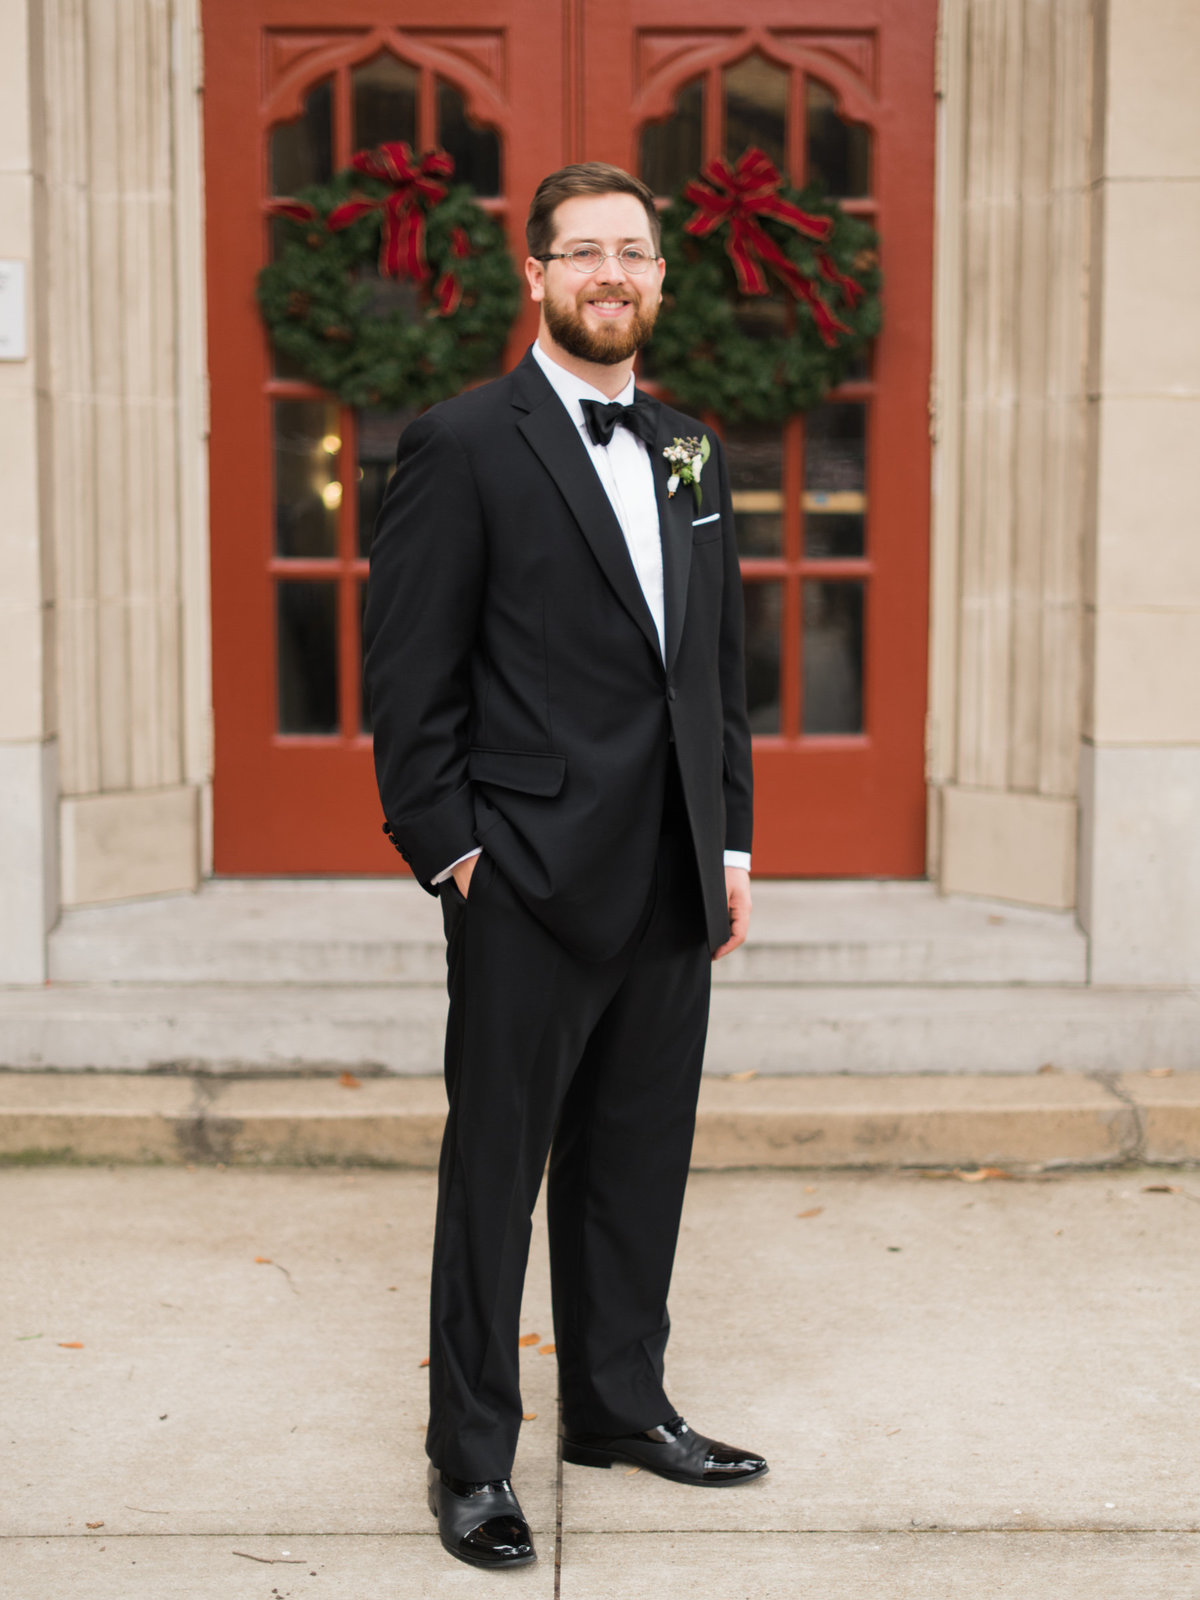 Courtney Hanson Photography - Festive Holiday Wedding in Dallas at Hickory Street Annex-4020